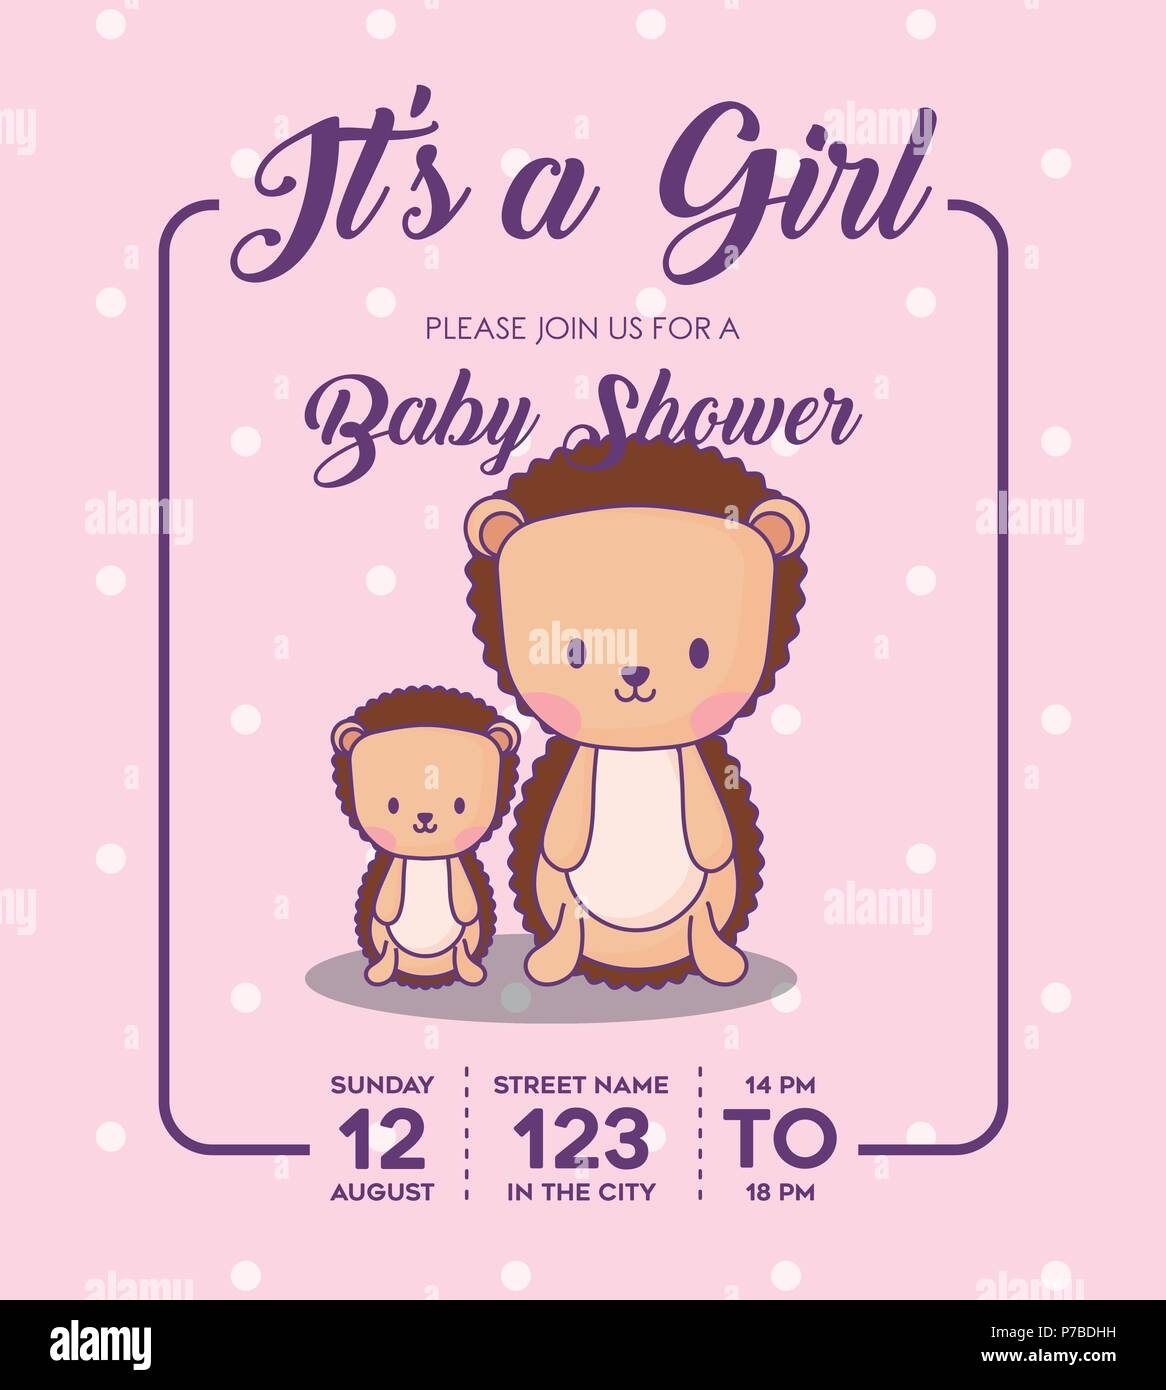 efc8959ad1b Its a girl Baby shower Invitation with porcupines icon over purple  background